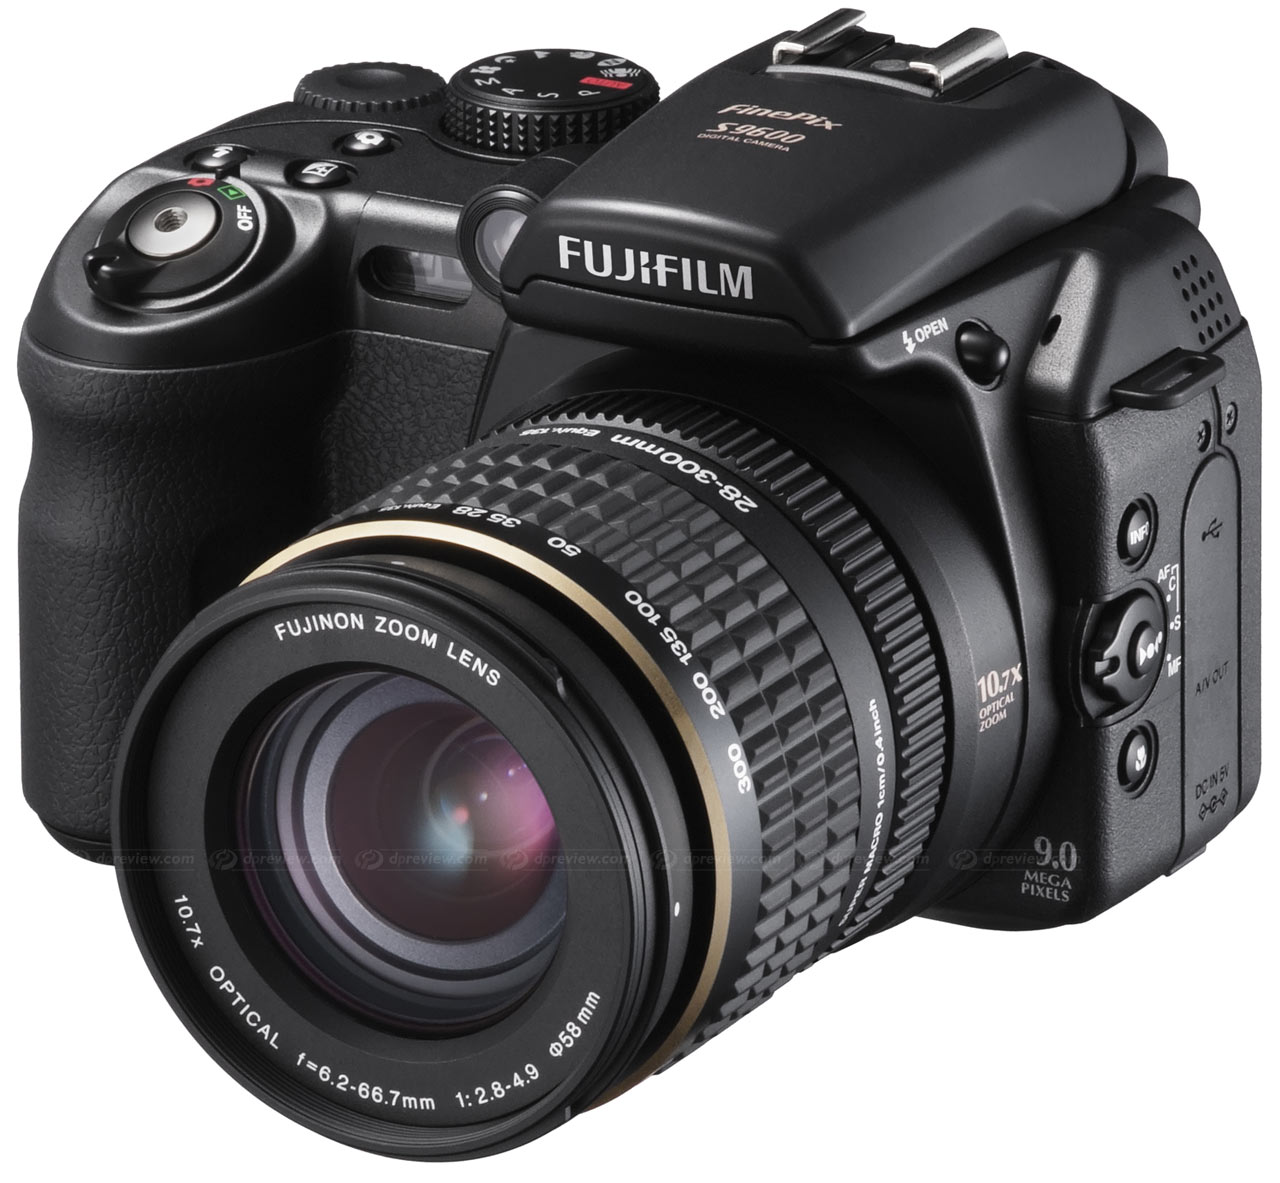 Fujifilm Finepix S9600    S9100  Digital Photography Review